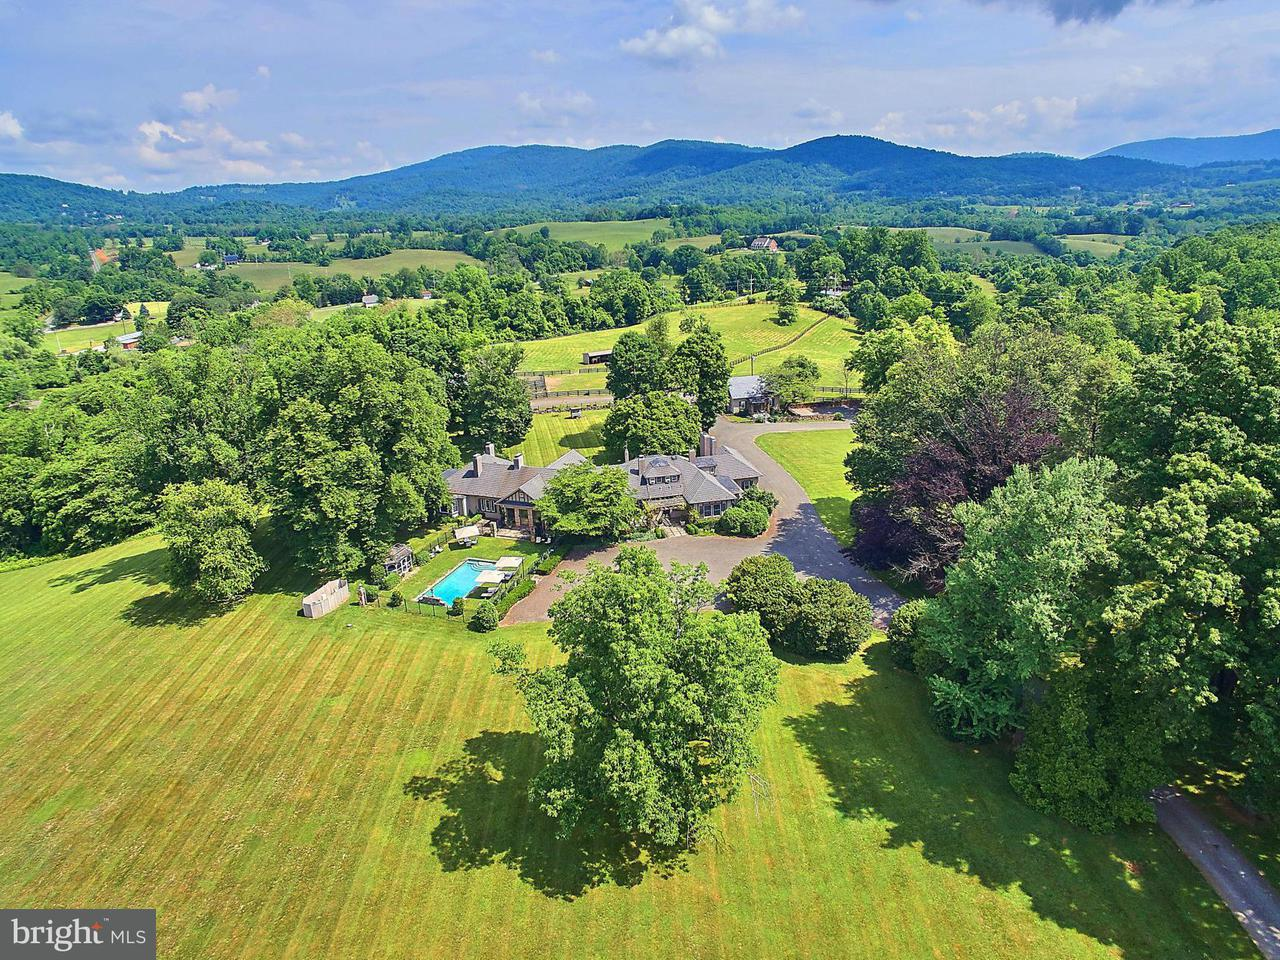 Farm for Sale at 1482 ZACHARY TAYLOR HWY 1482 ZACHARY TAYLOR HWY Huntly, Virginia 22640 United States